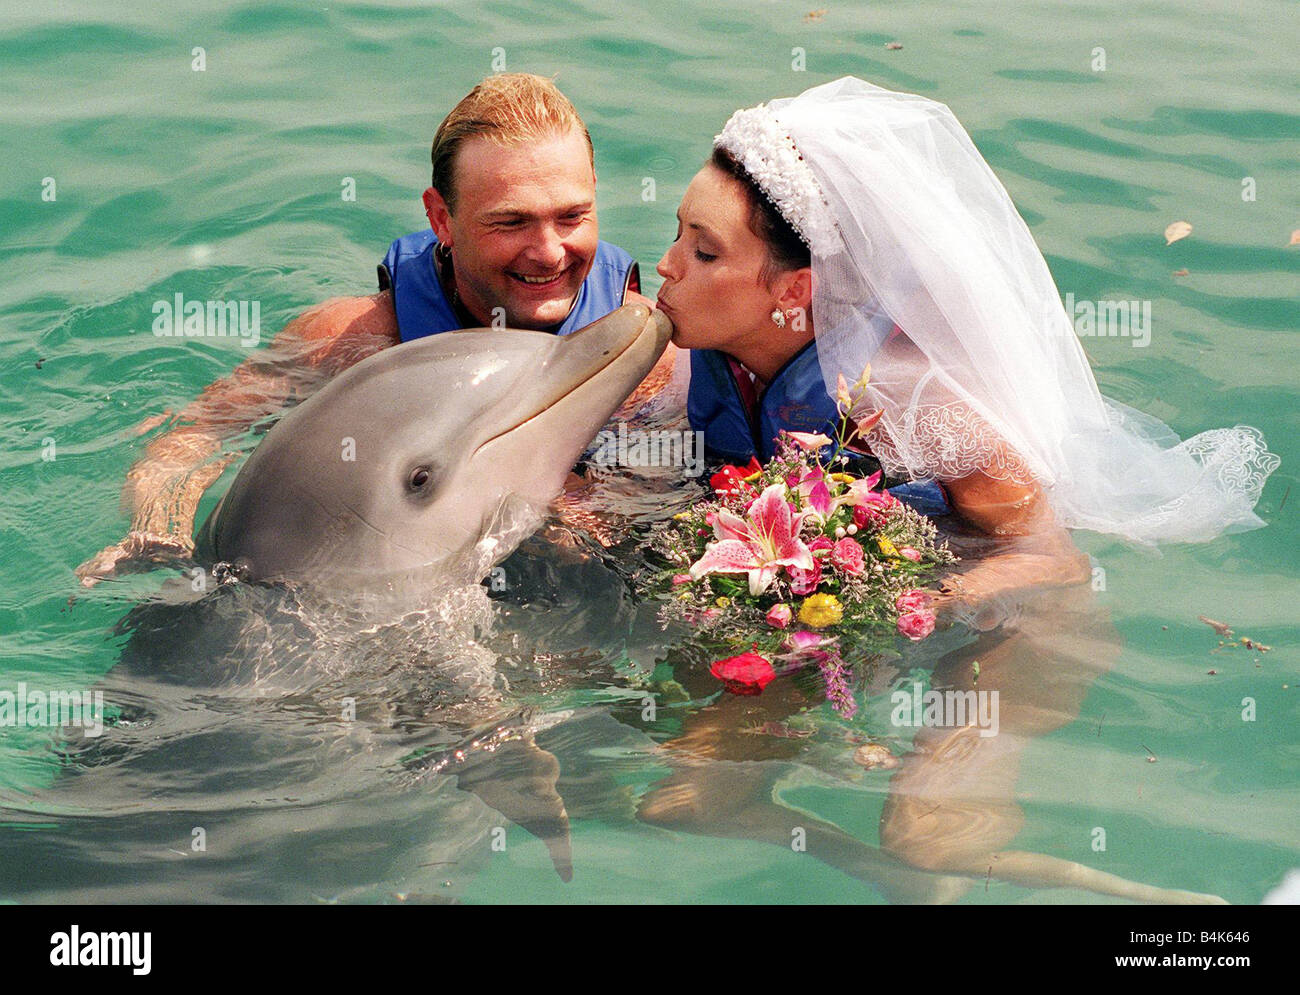 David Blades dolphin wedding Bahamas 1998 marries bride Avril Thomson in Blue Laggon Bahamas the best man and bridesmaids - Stock Image